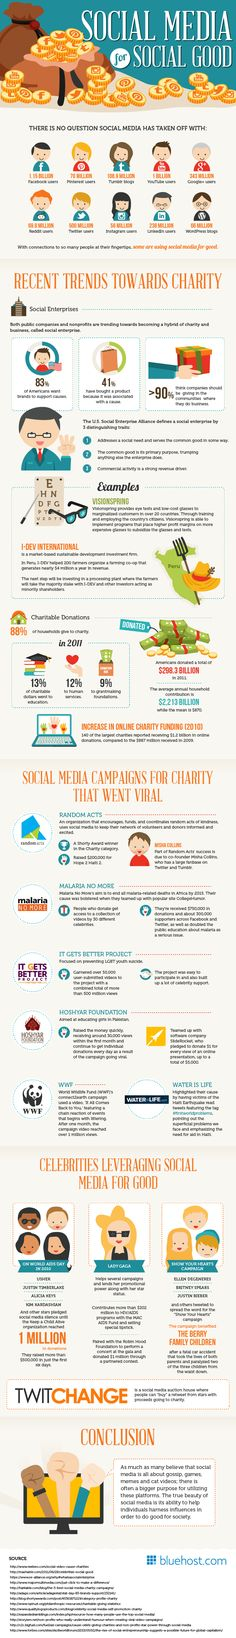 Social Media For Good #infographic